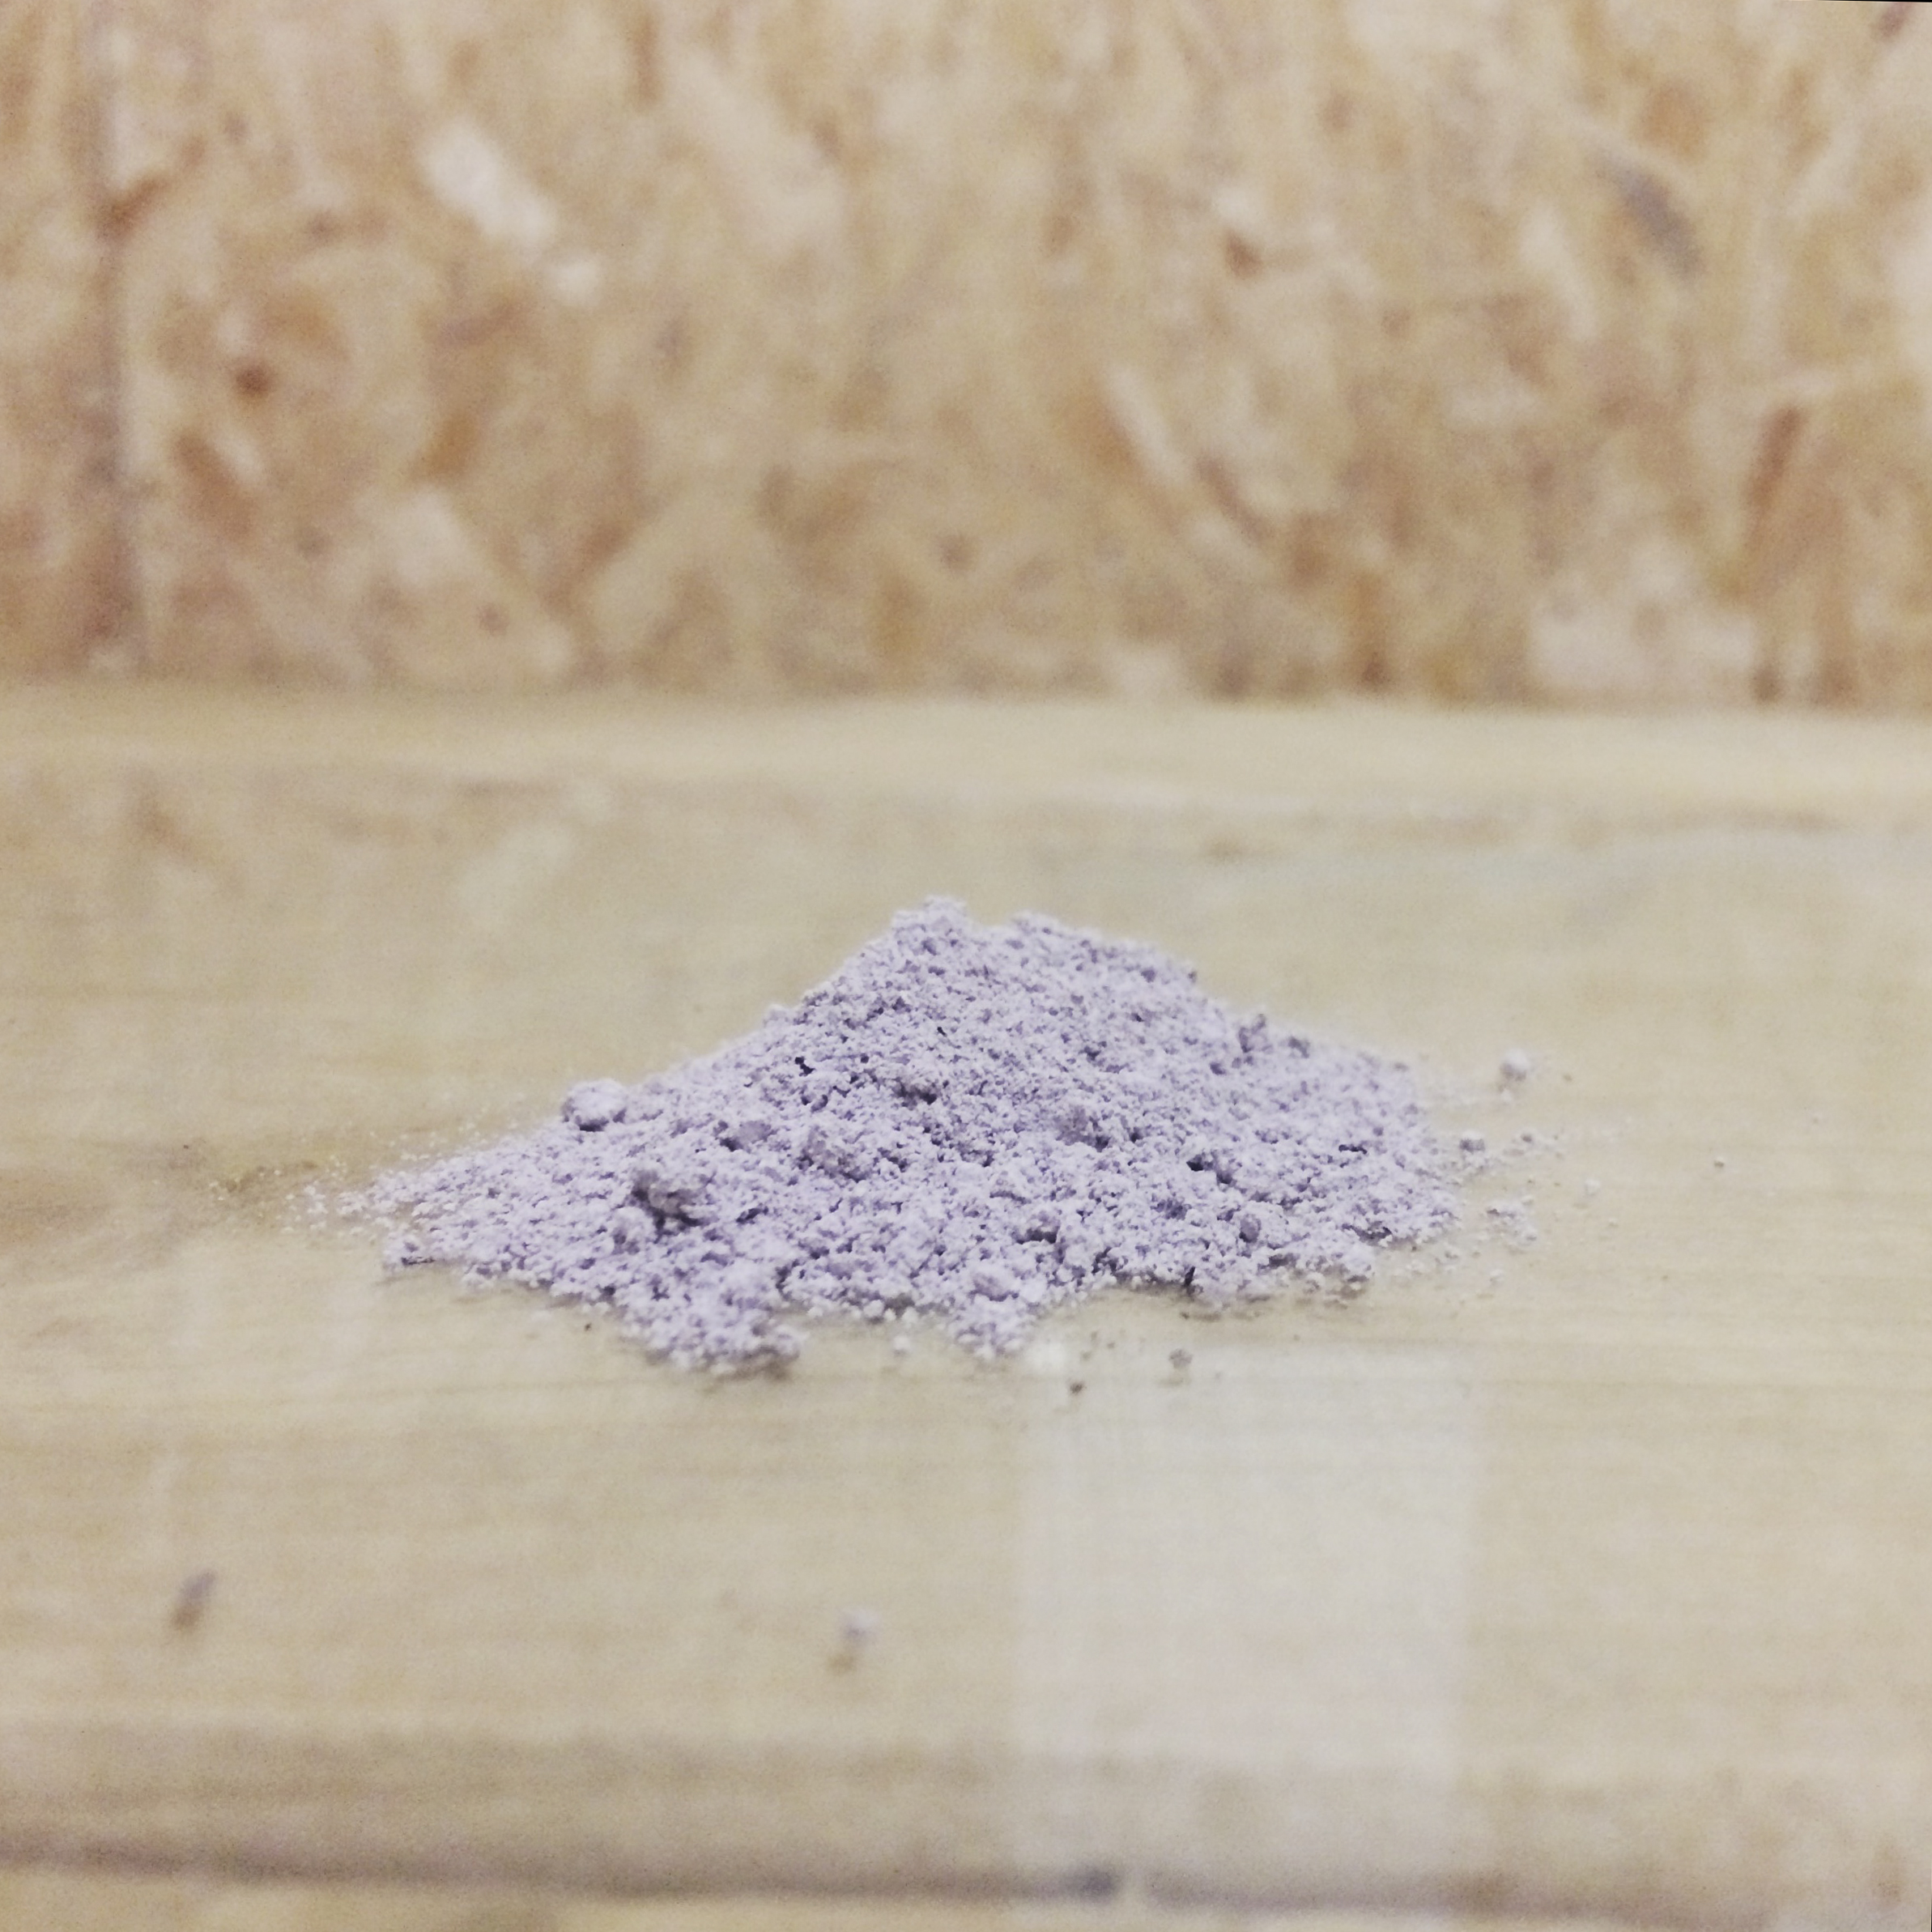 Purple ash from the Spit and Sawdust fire pit. This was ground up and made into an egg tempera paint which I used to create the final  wall mural .